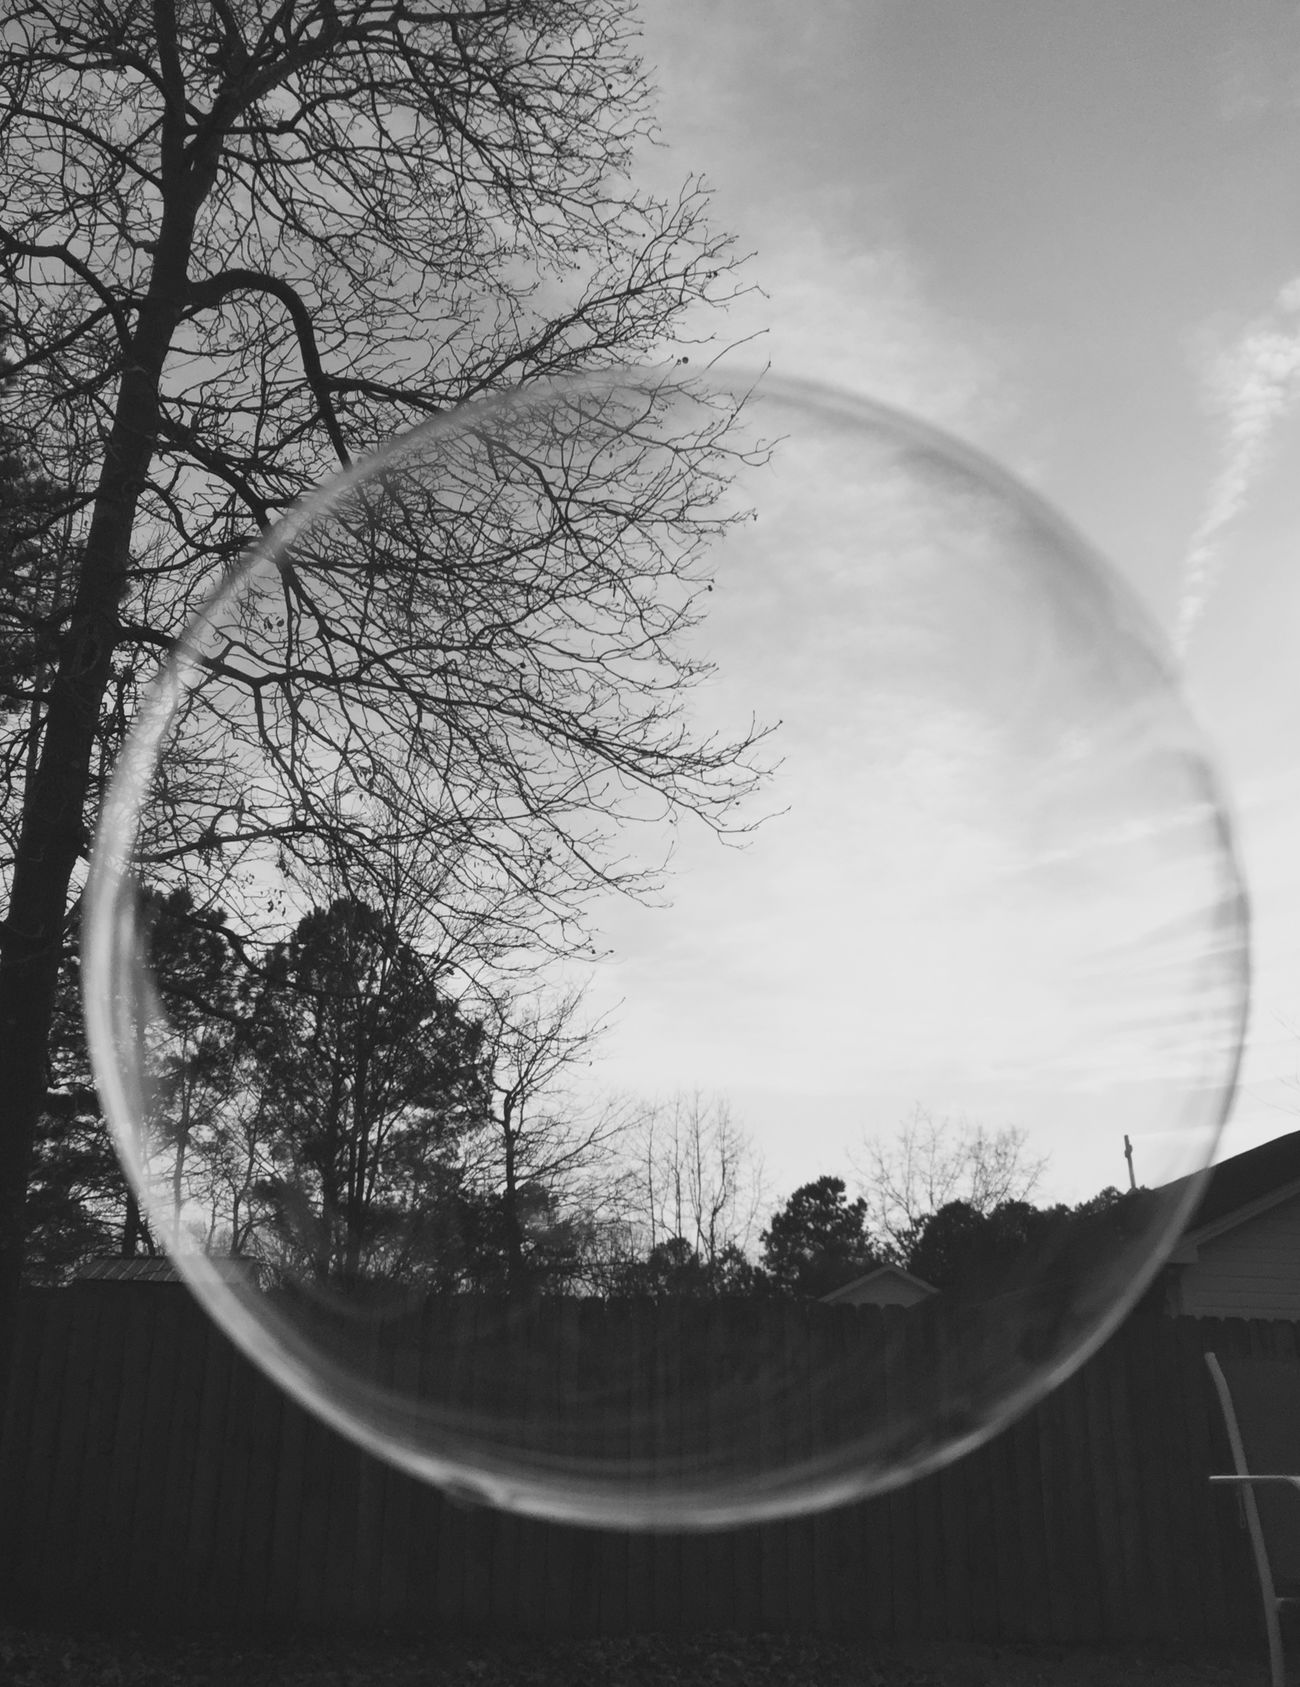 #Bubbles Monochrome